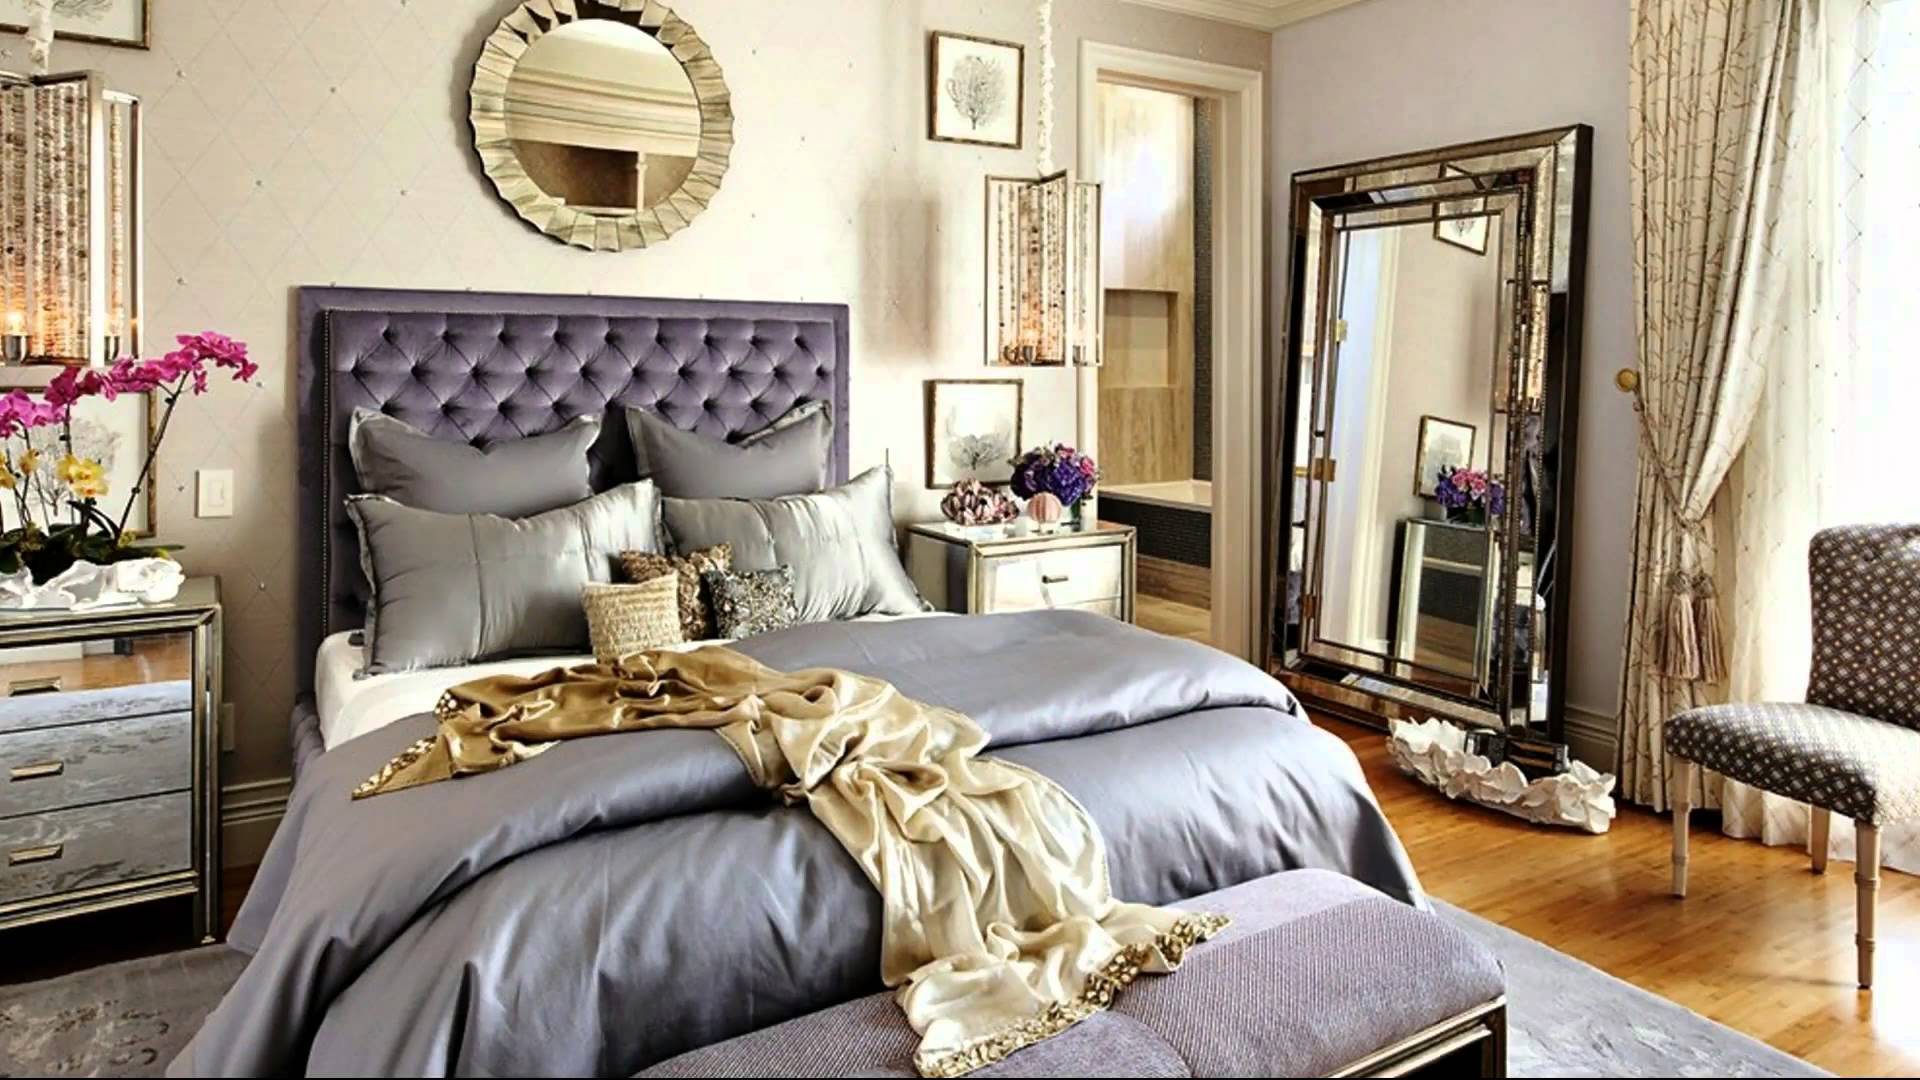 Elegant Bedroom Ideas With Old Hollywood Glamour Decor Combined Grey Bedding And Tufted Headboard Plus